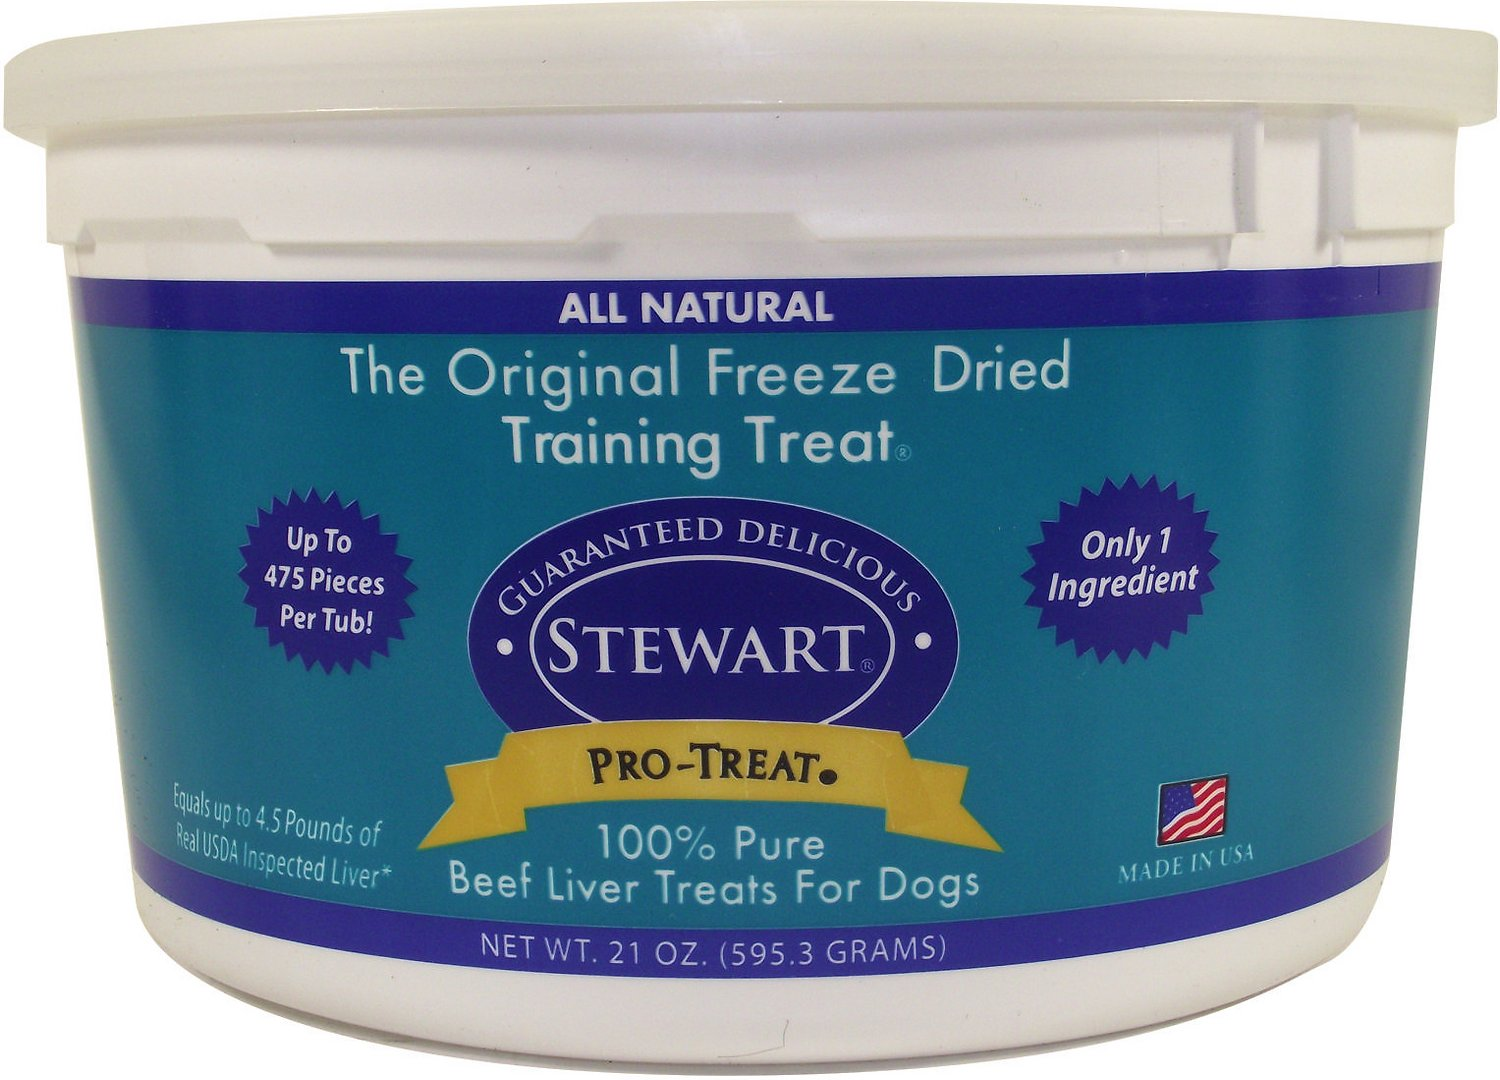 Stewart Pro-Treat Beef Liver Freeze-Dried Dog Treats Image